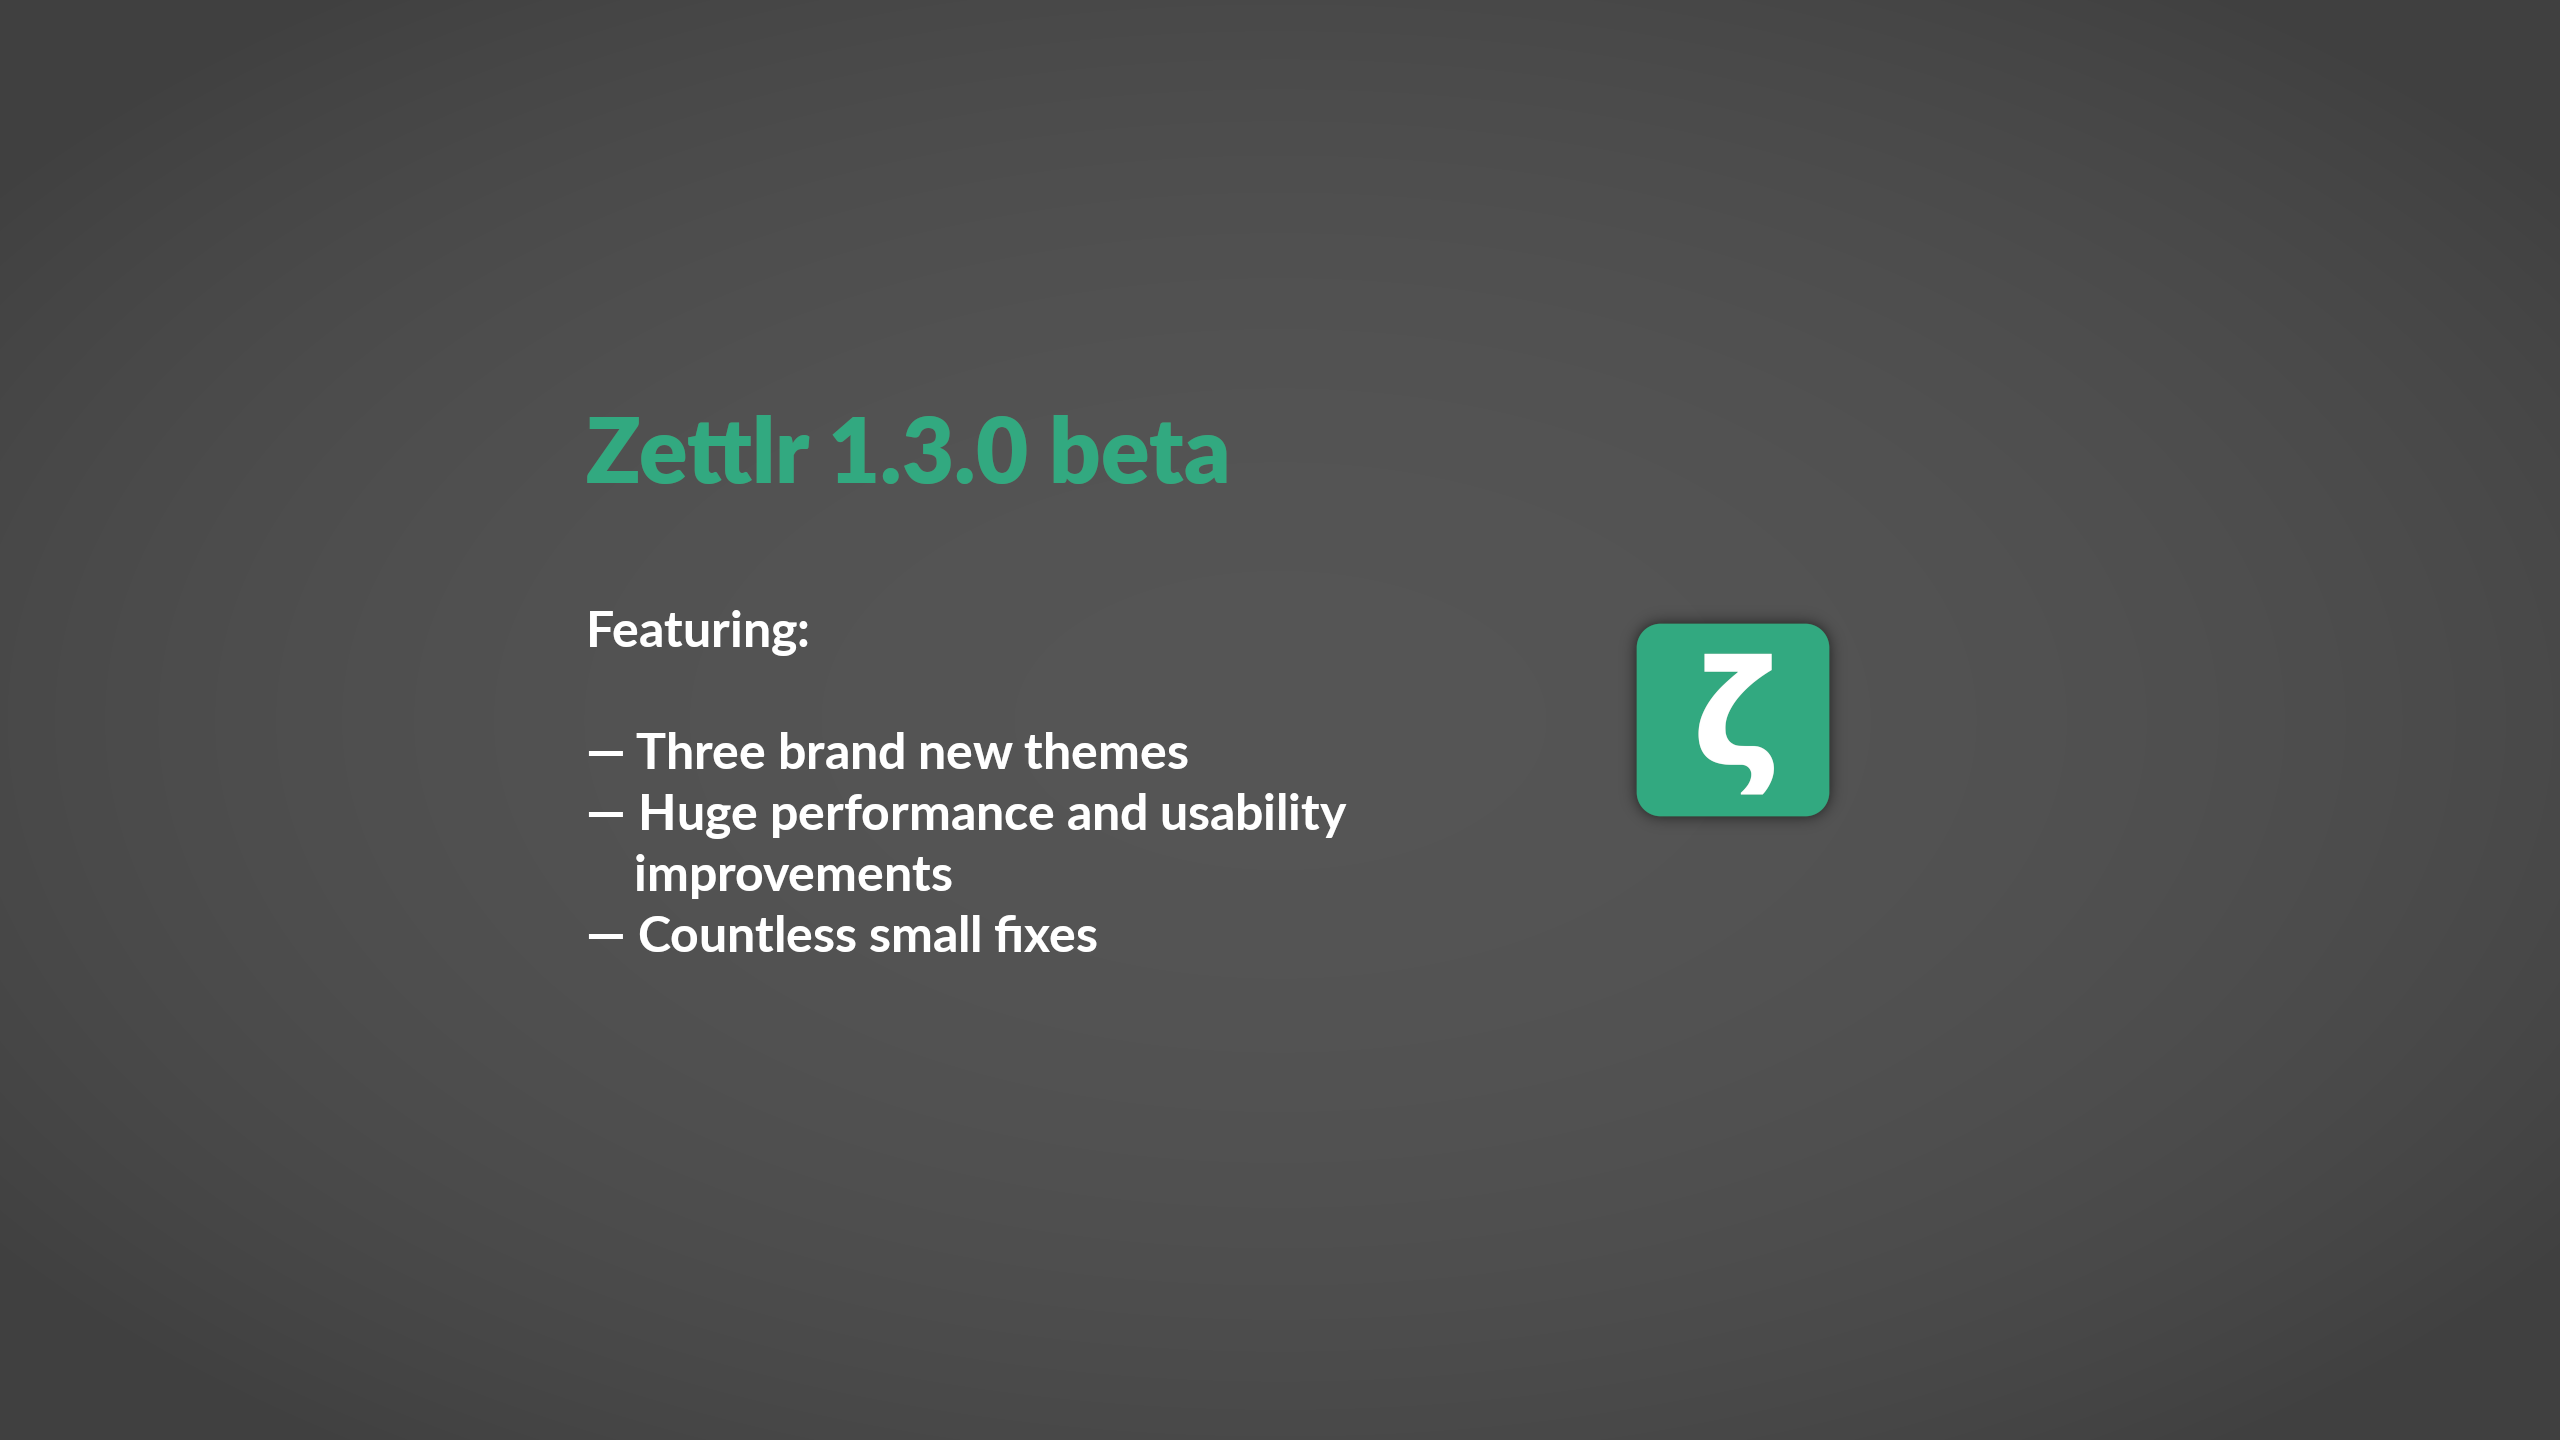 Beta Phase for Zettlr 1.3 begins